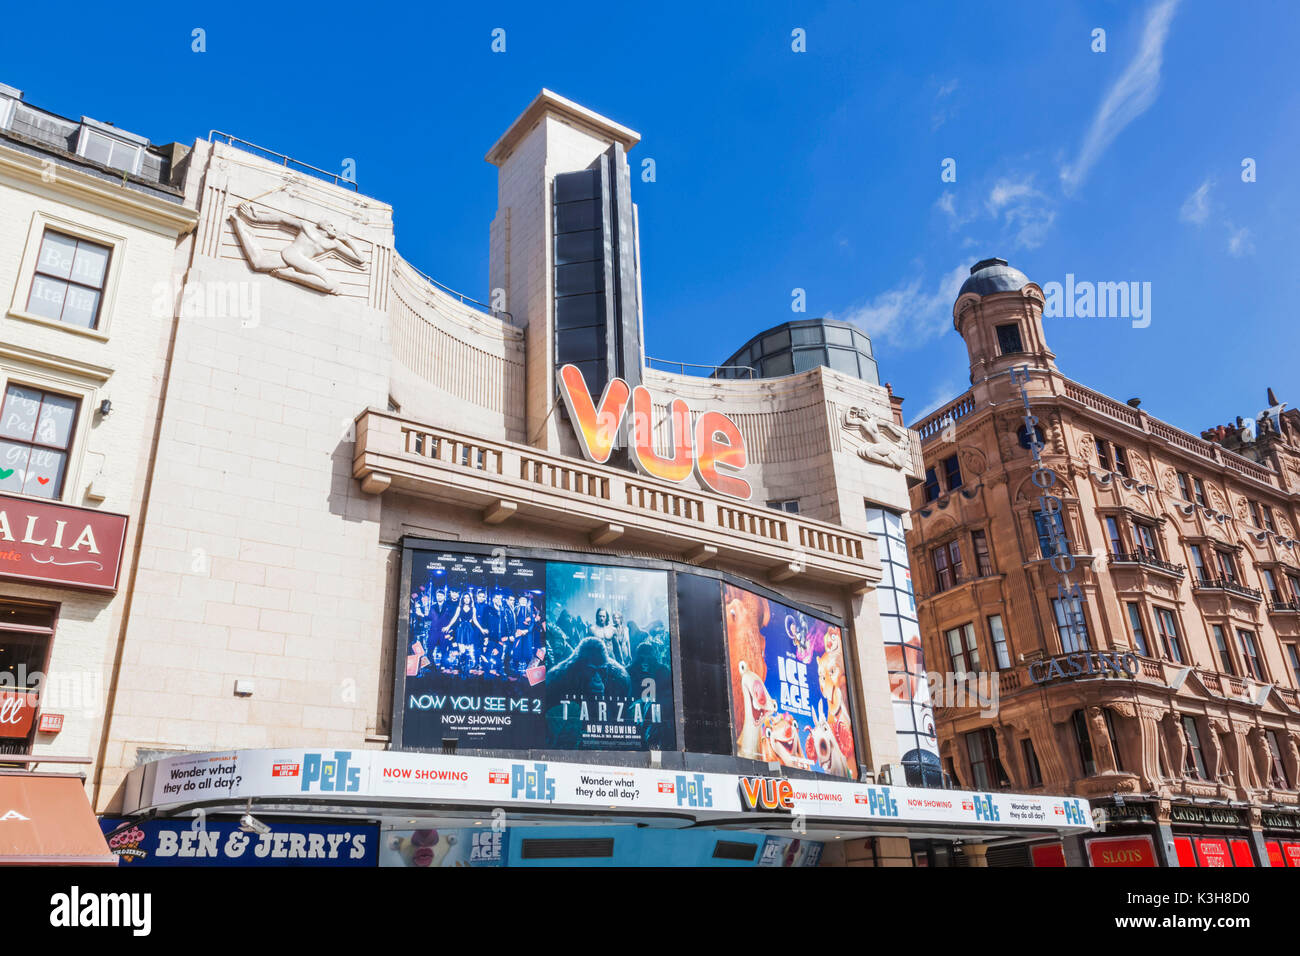 England, London, Leicester Square, Vue Cinema - Stock Image